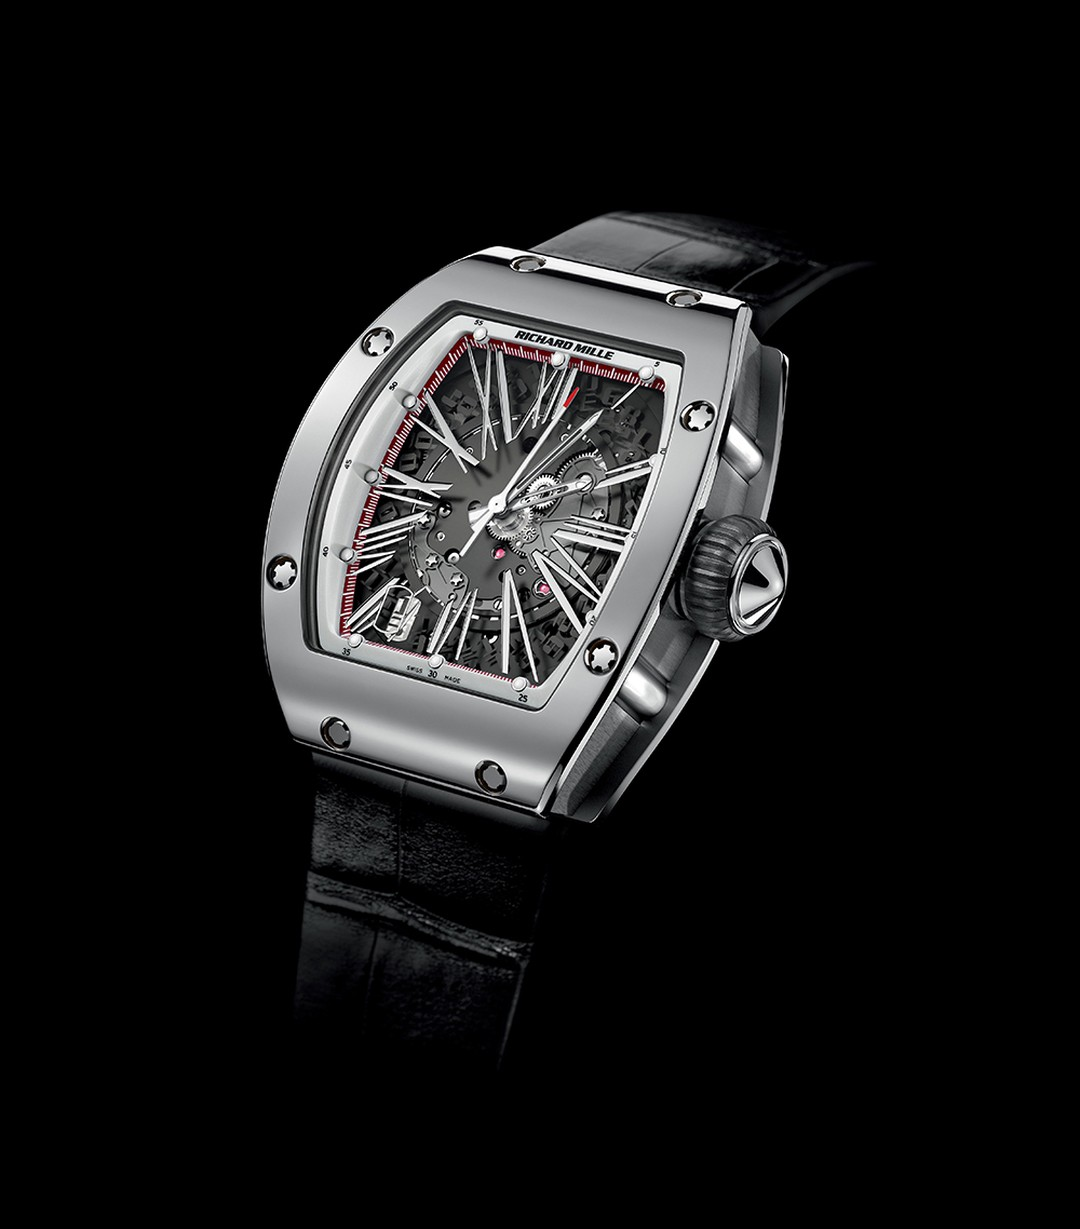 RichardMille0232.jpg